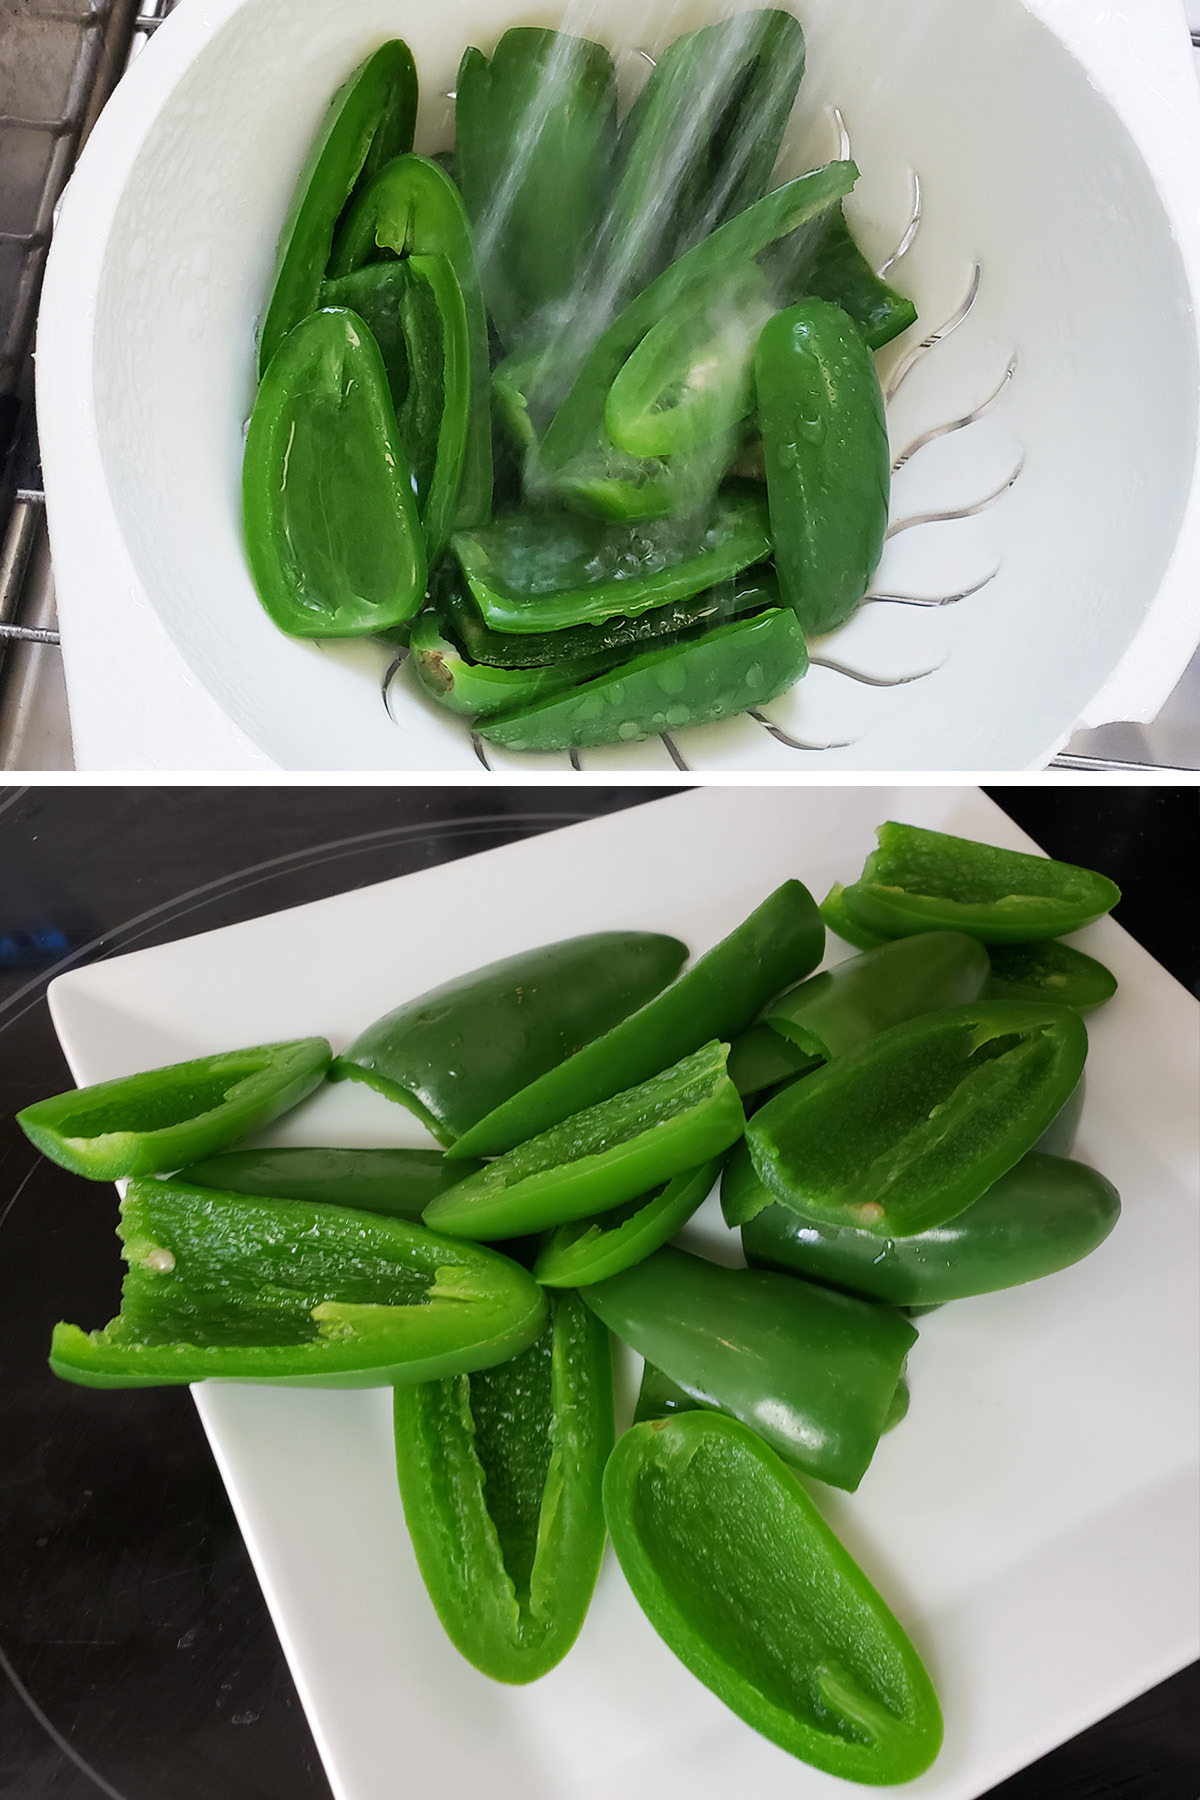 A two part compilation image showing halved jalapenos being rinsed off, and on a plate.